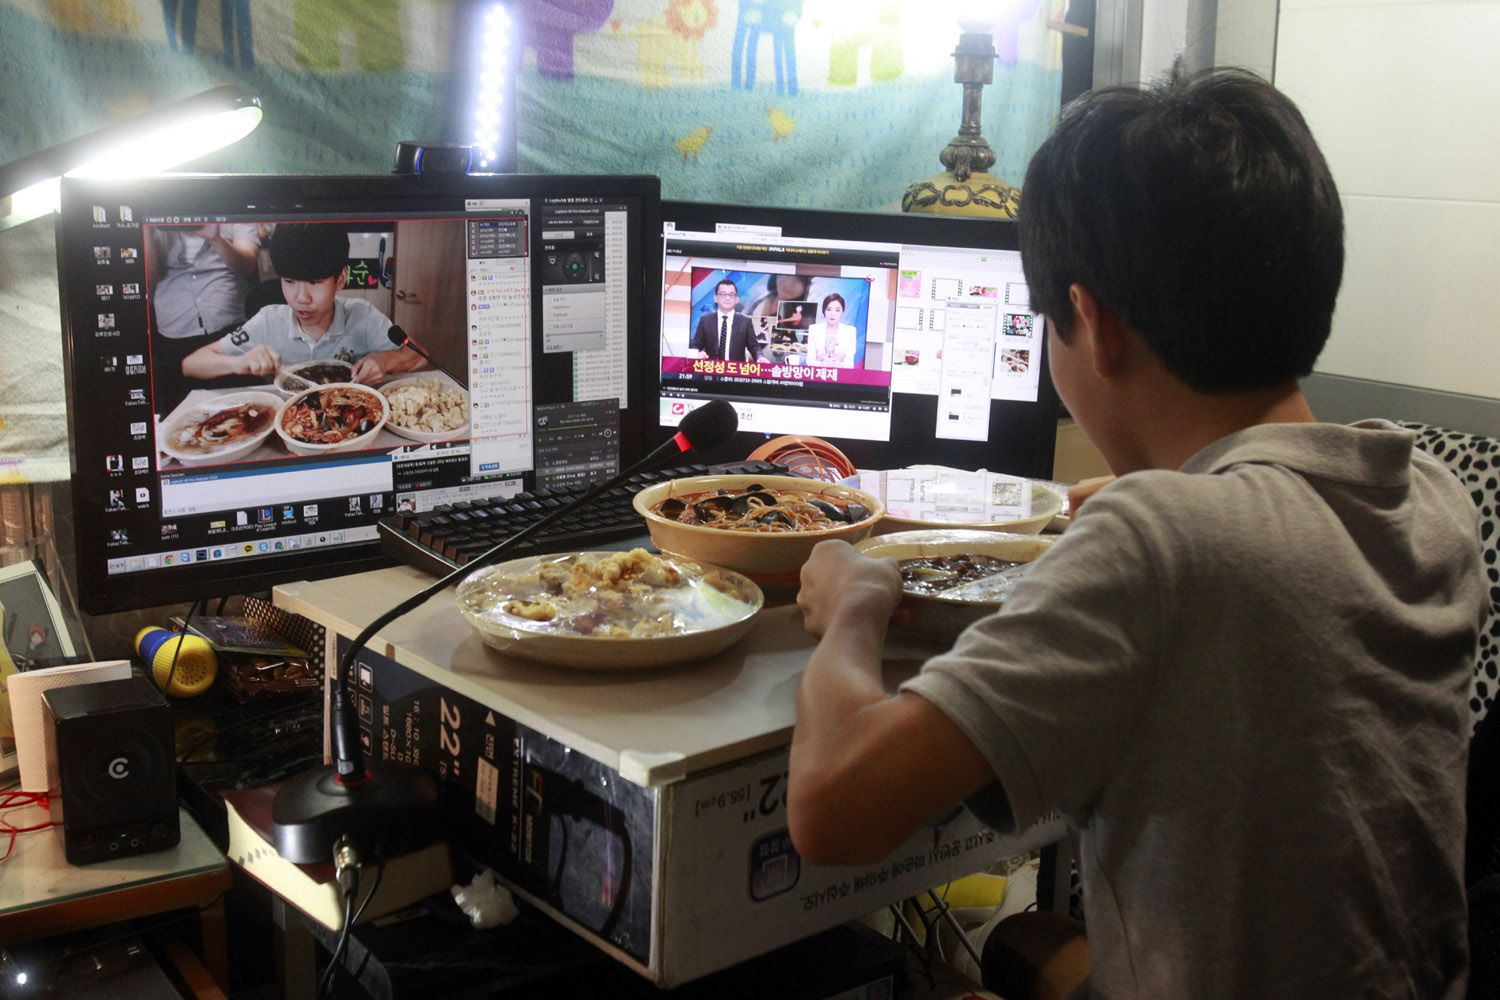 Thousands Watch Korean Teen Eat Dinner Every Night